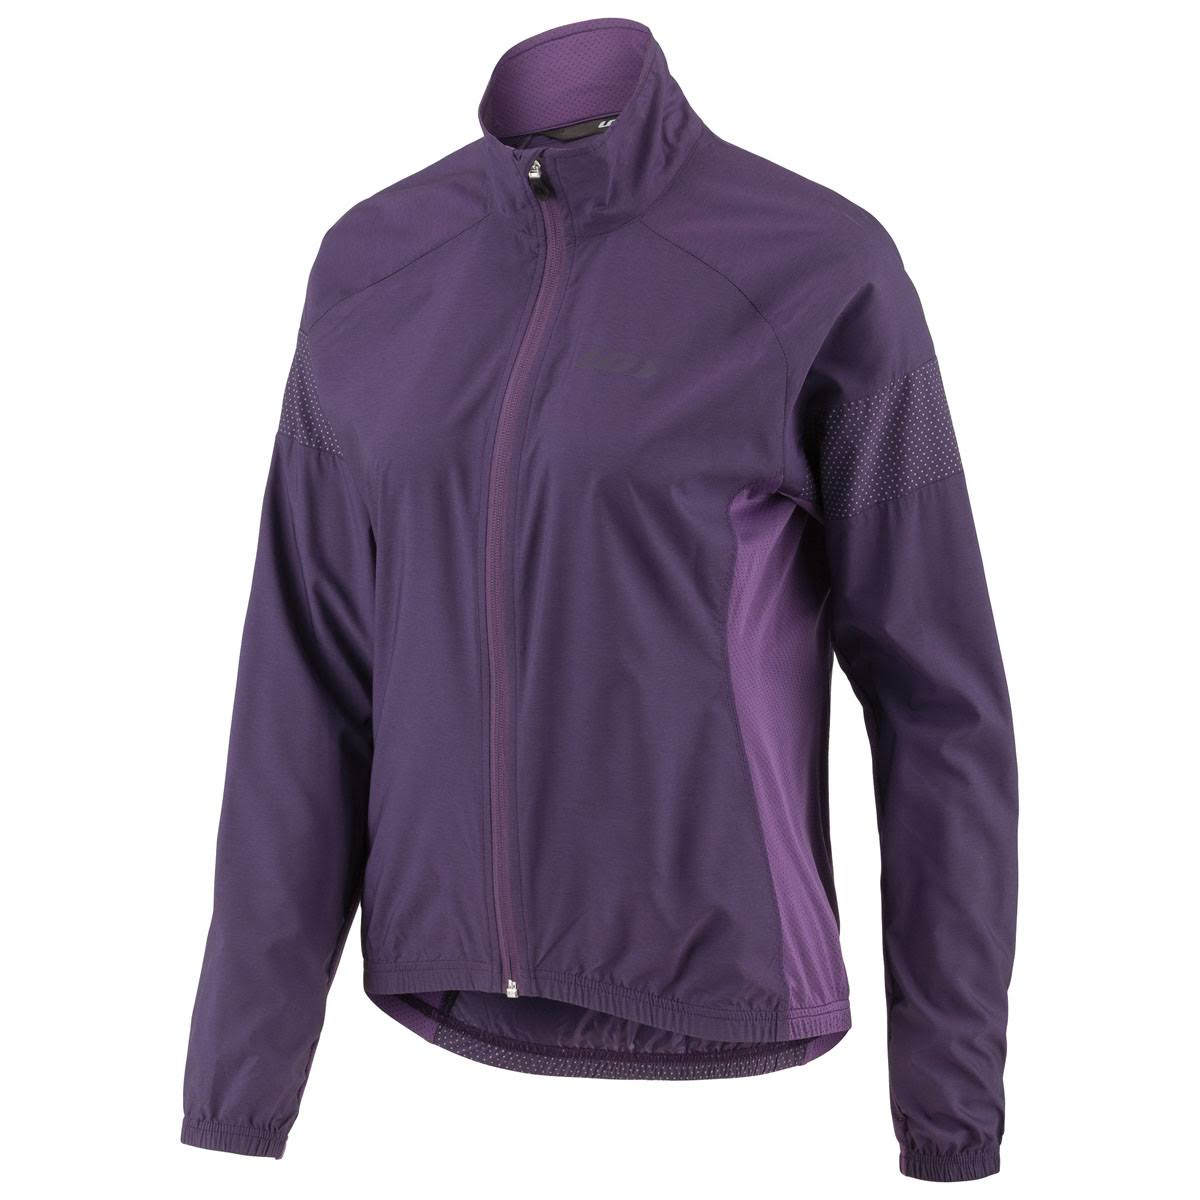 Louis Garneau Modesto 3 Cycling Jacket - Women's Logan Berry, L